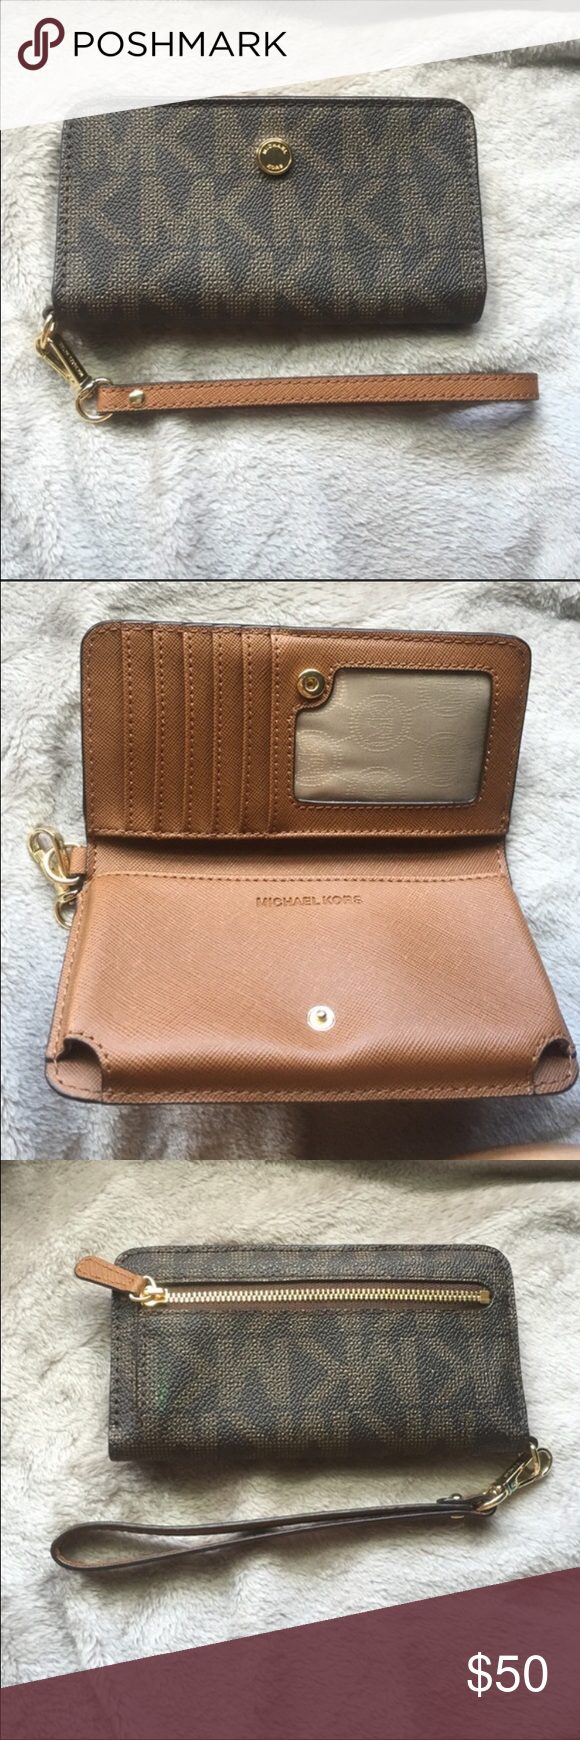 Michael Kors Tech Wallet Excellent condition! Carried in purse. Michael Kors Bags Clutches & Wristlets